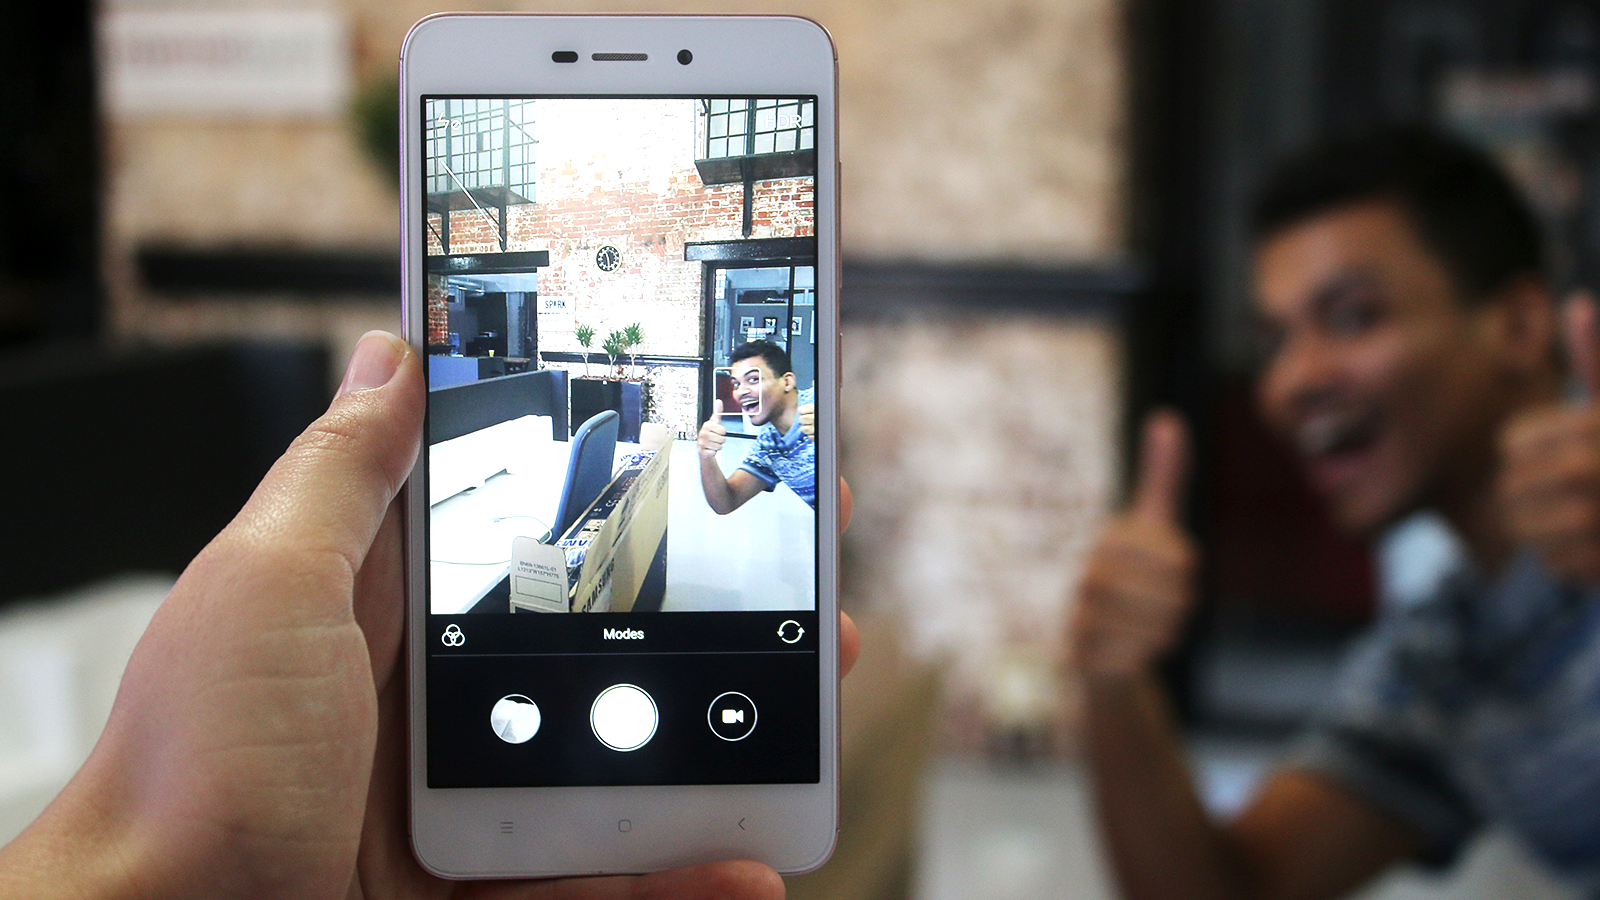 The Redmi 4A's camera software is almost exactly the same as the 4X